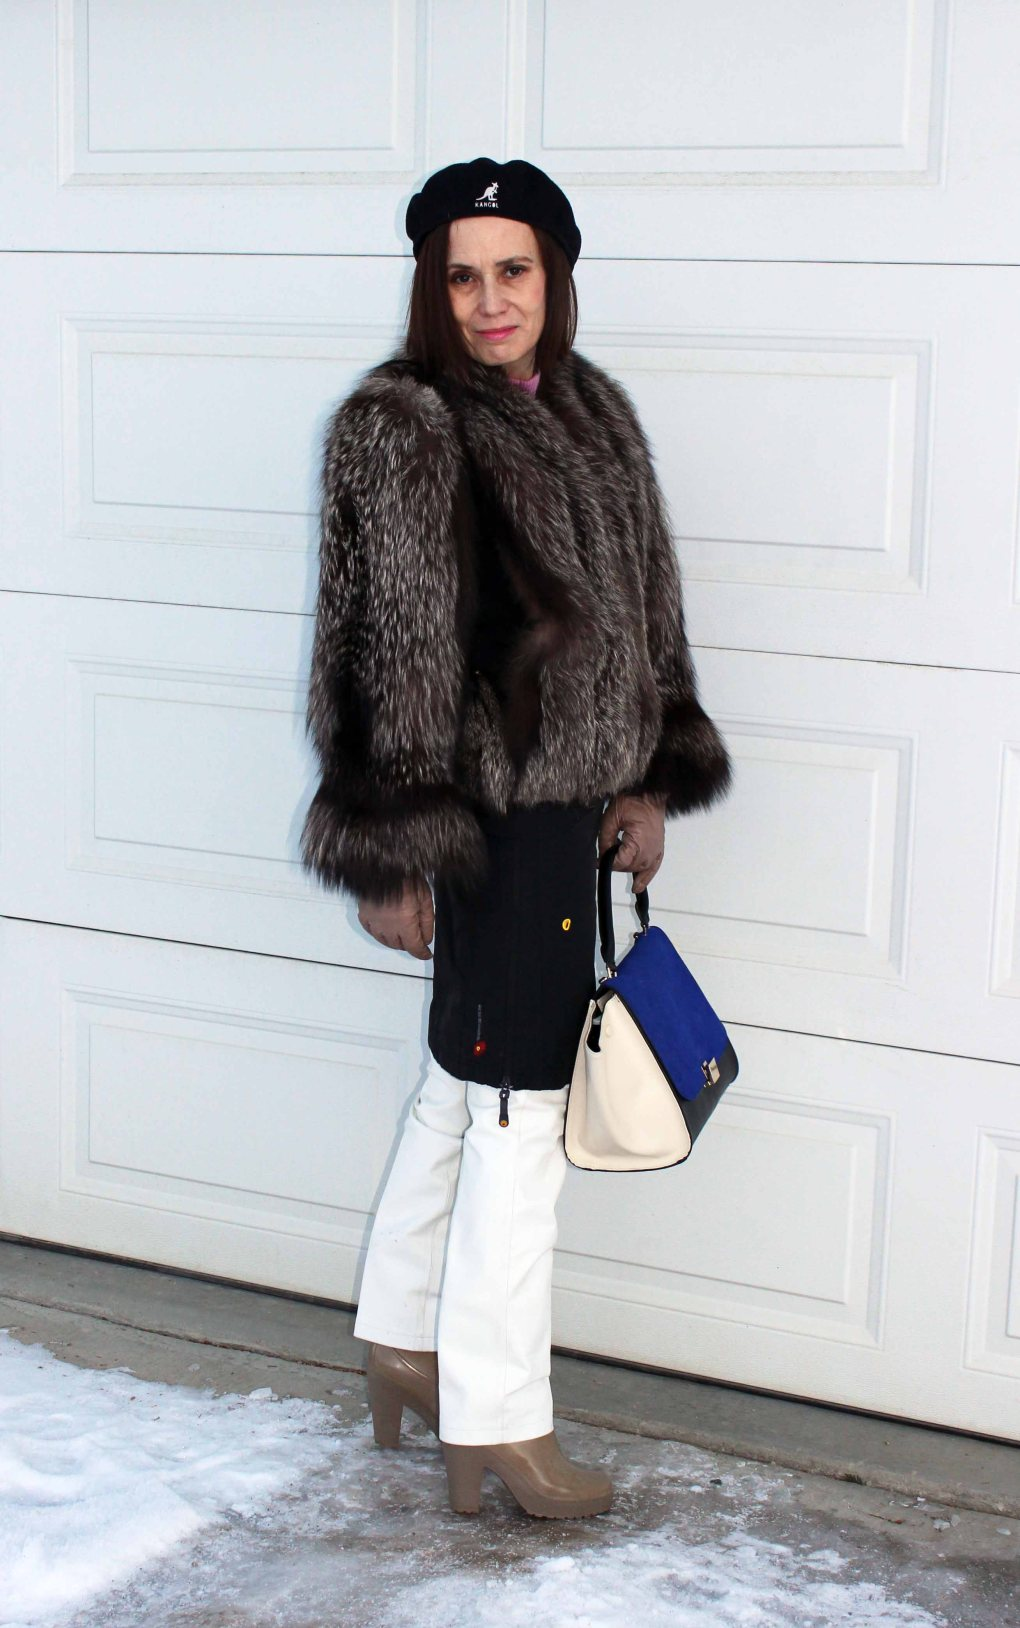 #fashionover50 woman in white pants and black skirt